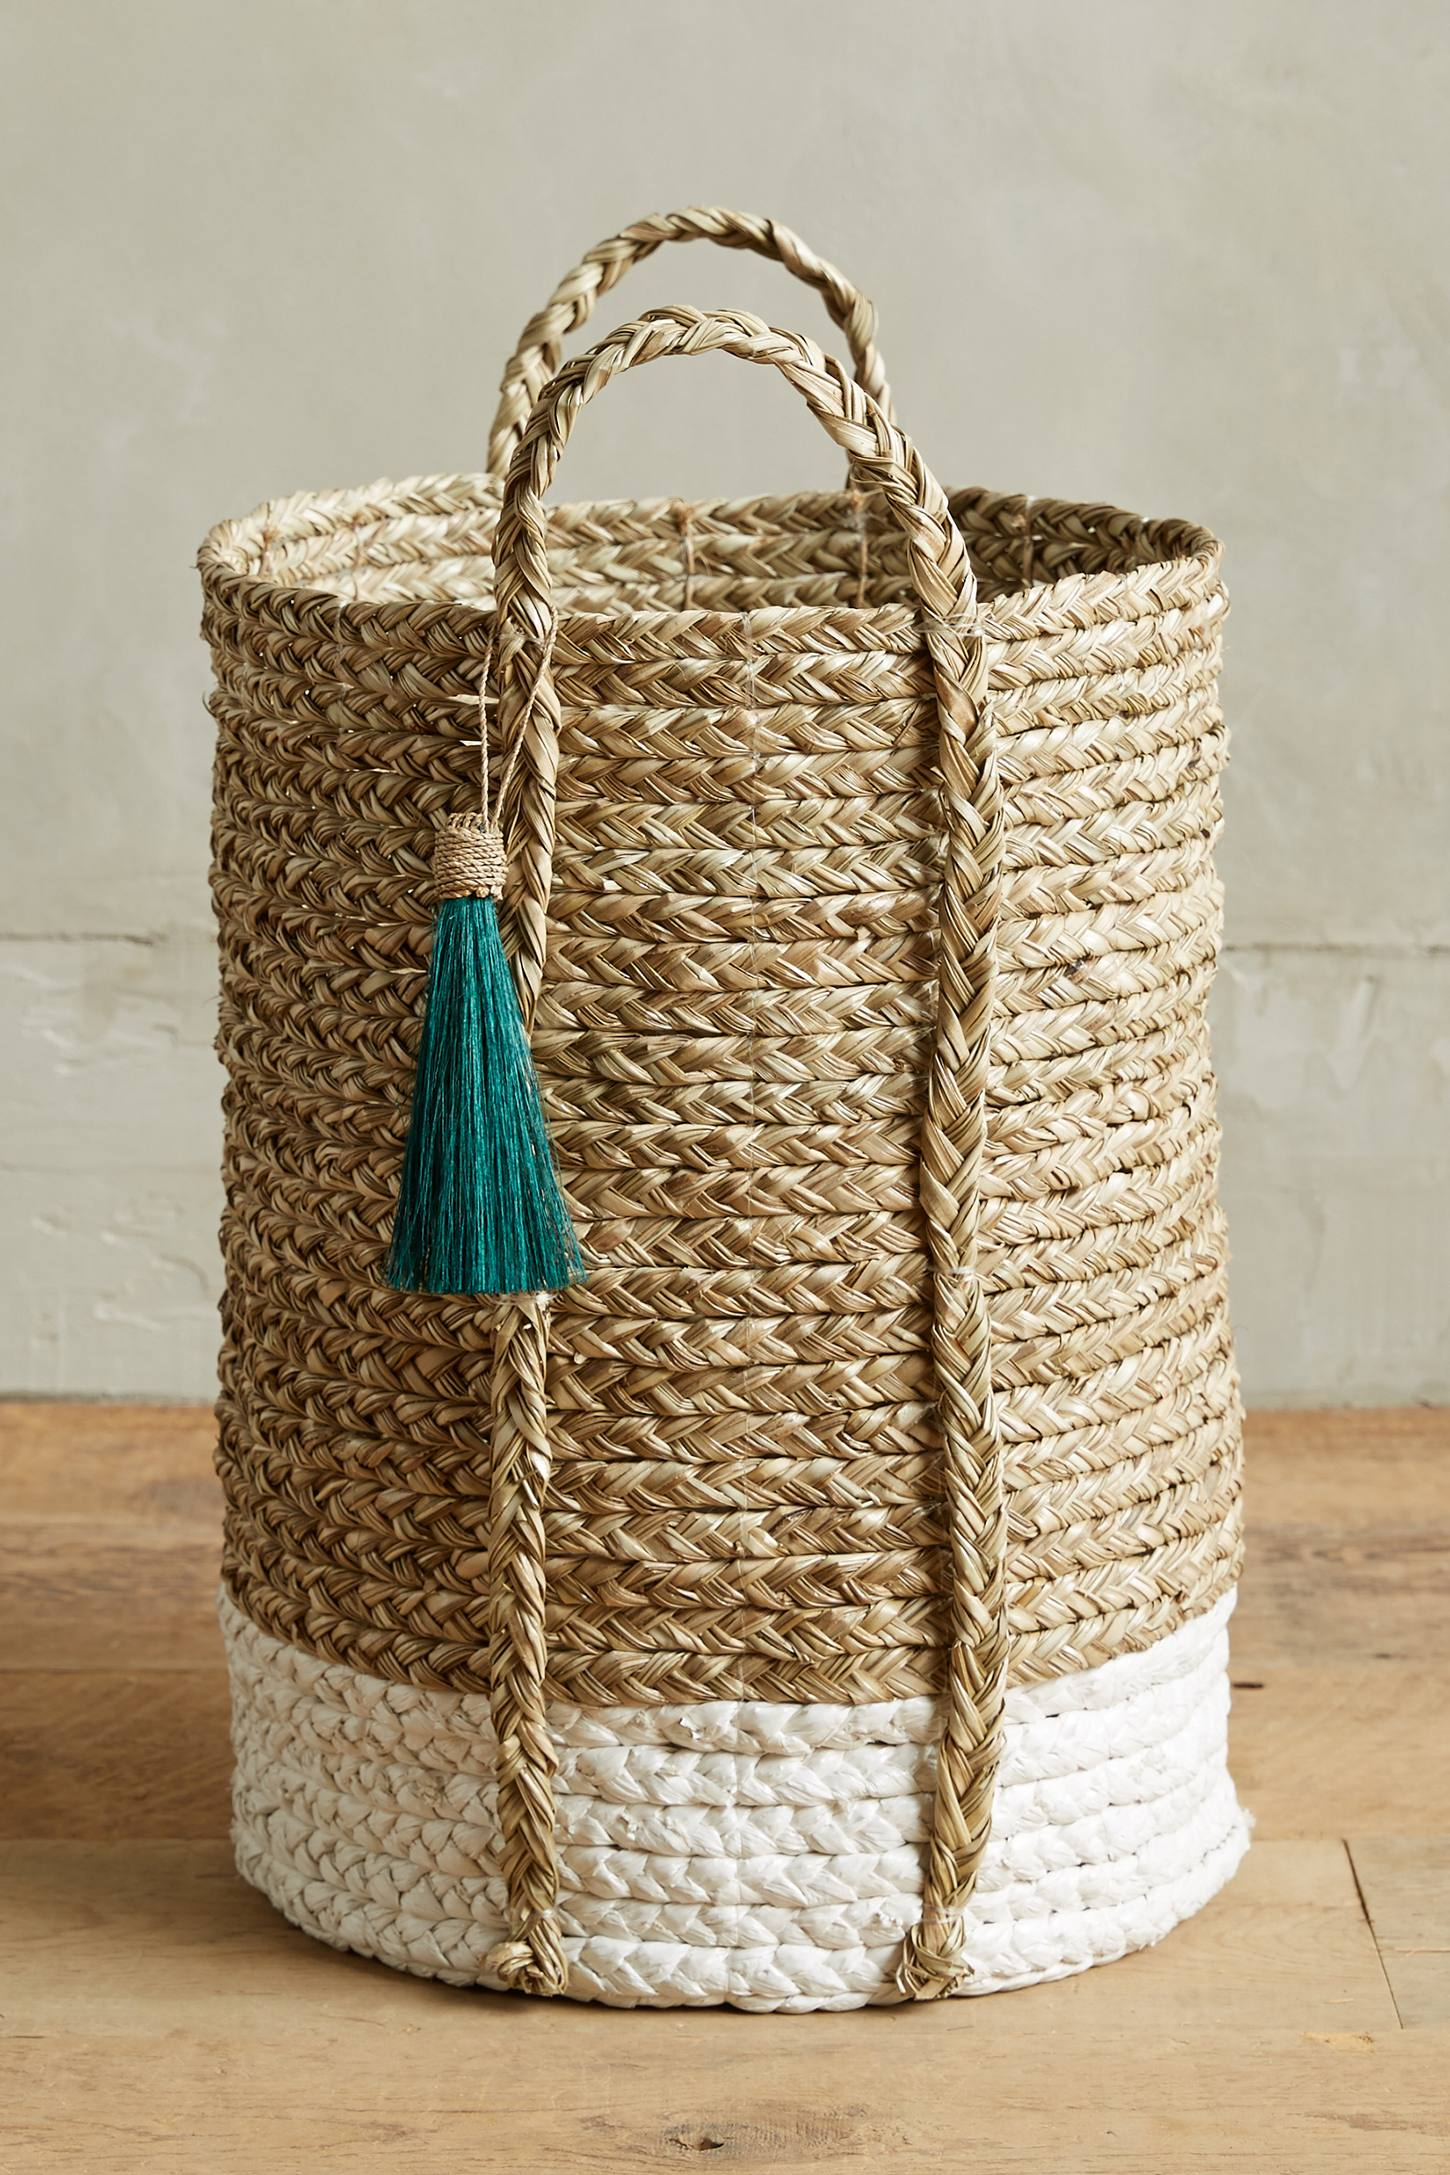 Tassel laundry basket from Anthropologie